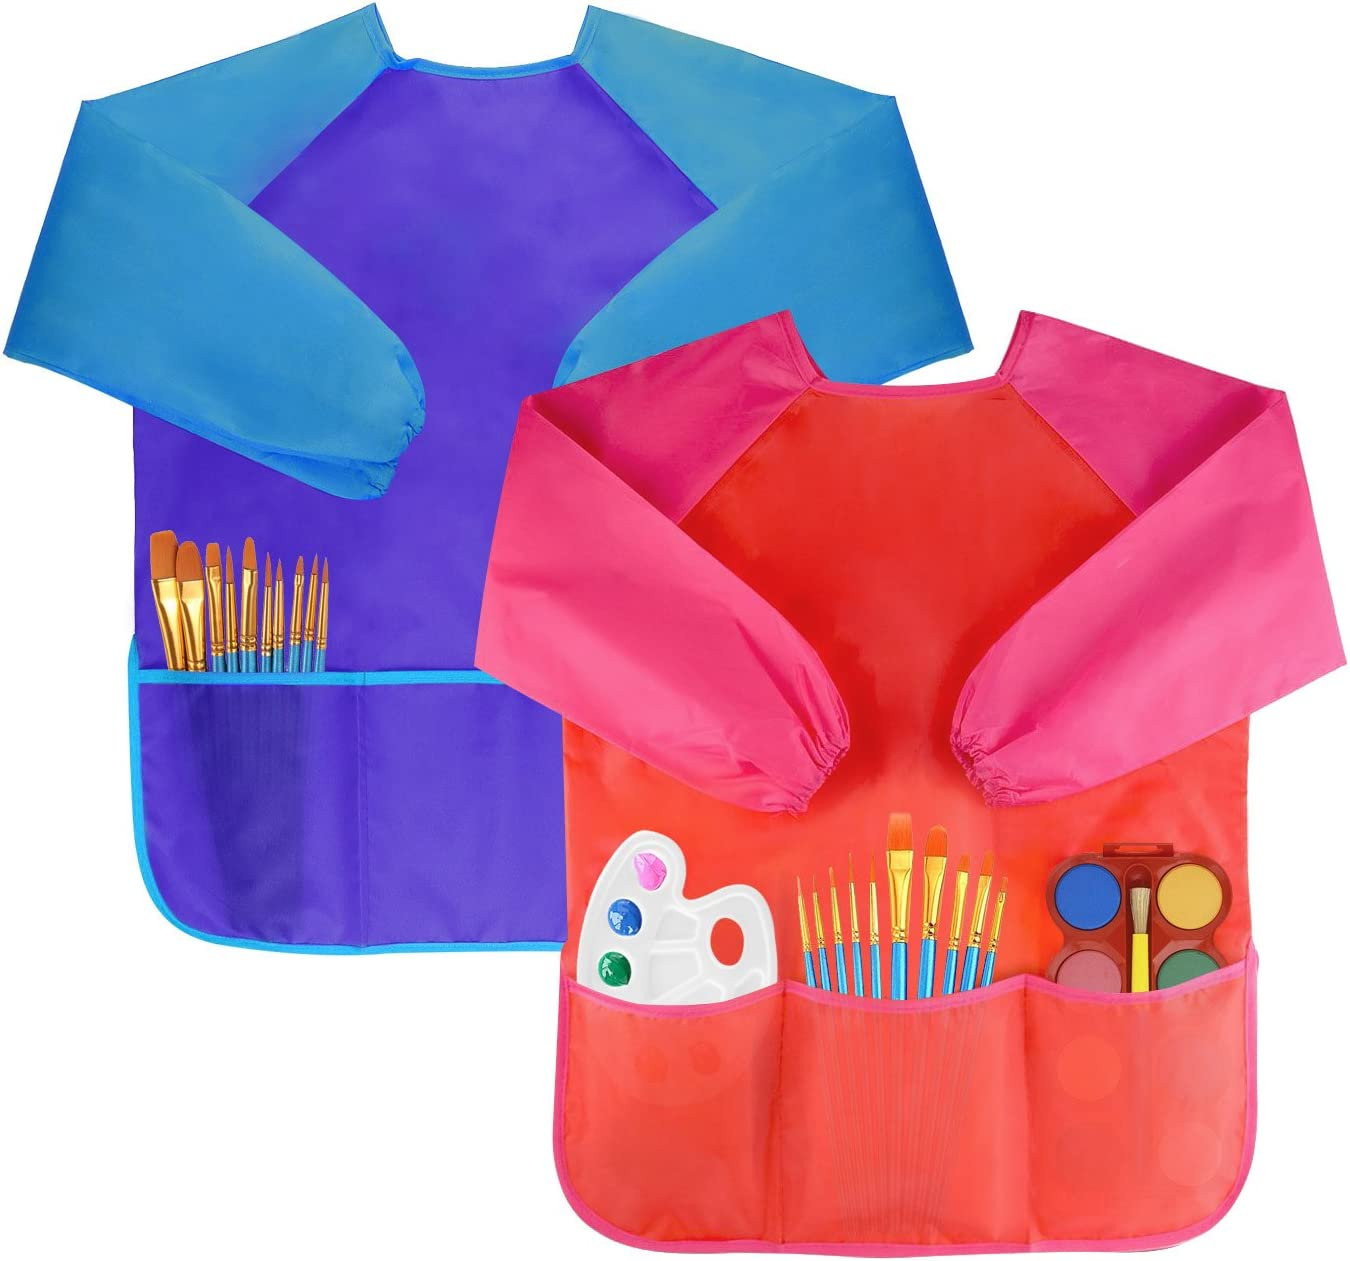 Waterproof Artists Painting Aprons Long Sleeve with 3 Pockets for Age 2-6 Years 2 Pack Bassion Pack of 2 Childrens Art Smocks 7 Brushes